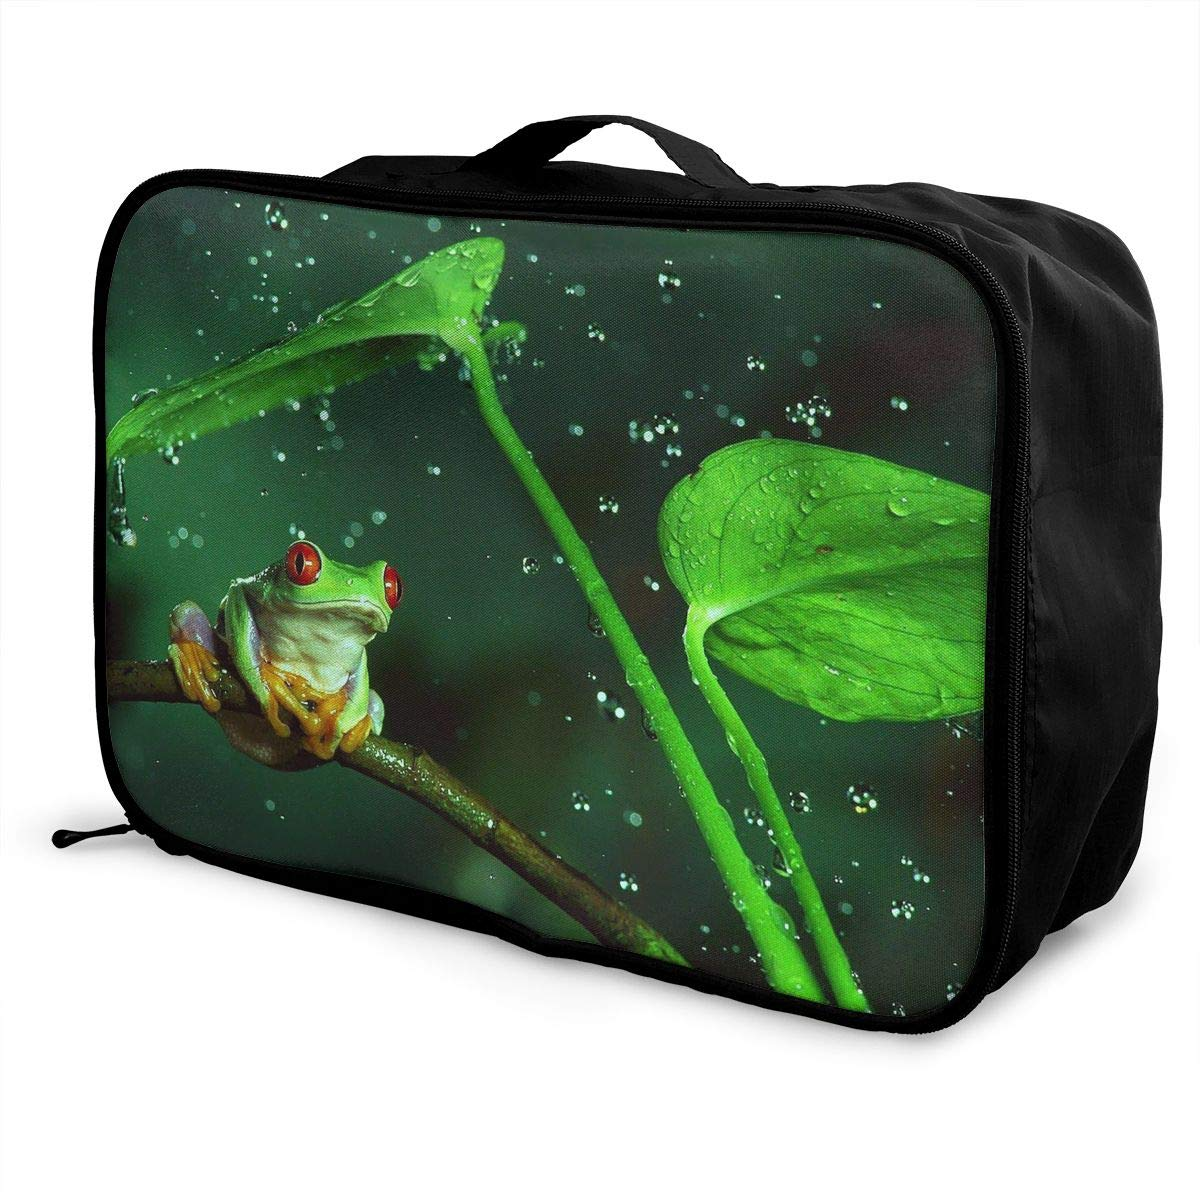 Travel Luggage Duffle Bag Lightweight Portable Handbag Red Eye Frog Large Capacity Waterproof Foldable Storage Tote